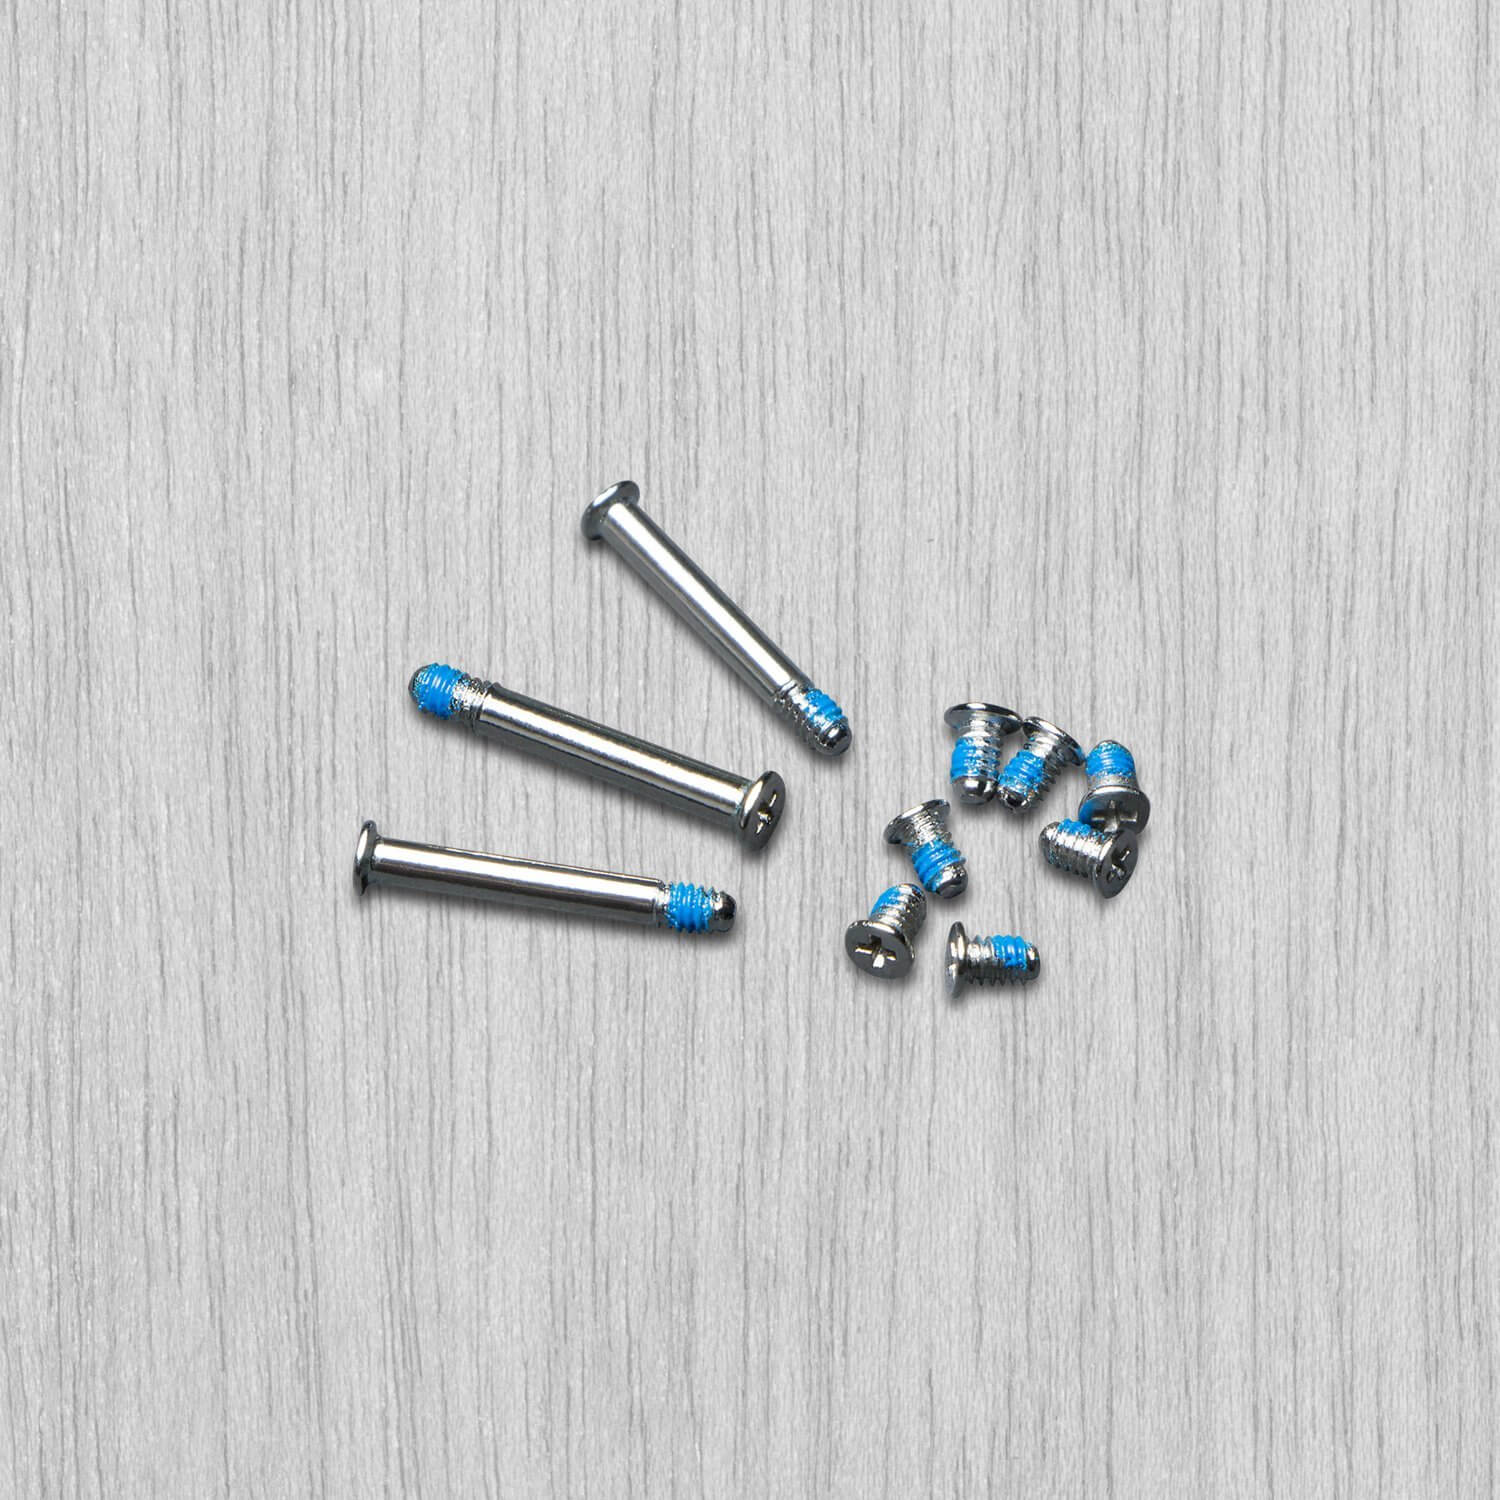 Replacement Screw Set for Unibody Apple Macbook Pro 13″ 15